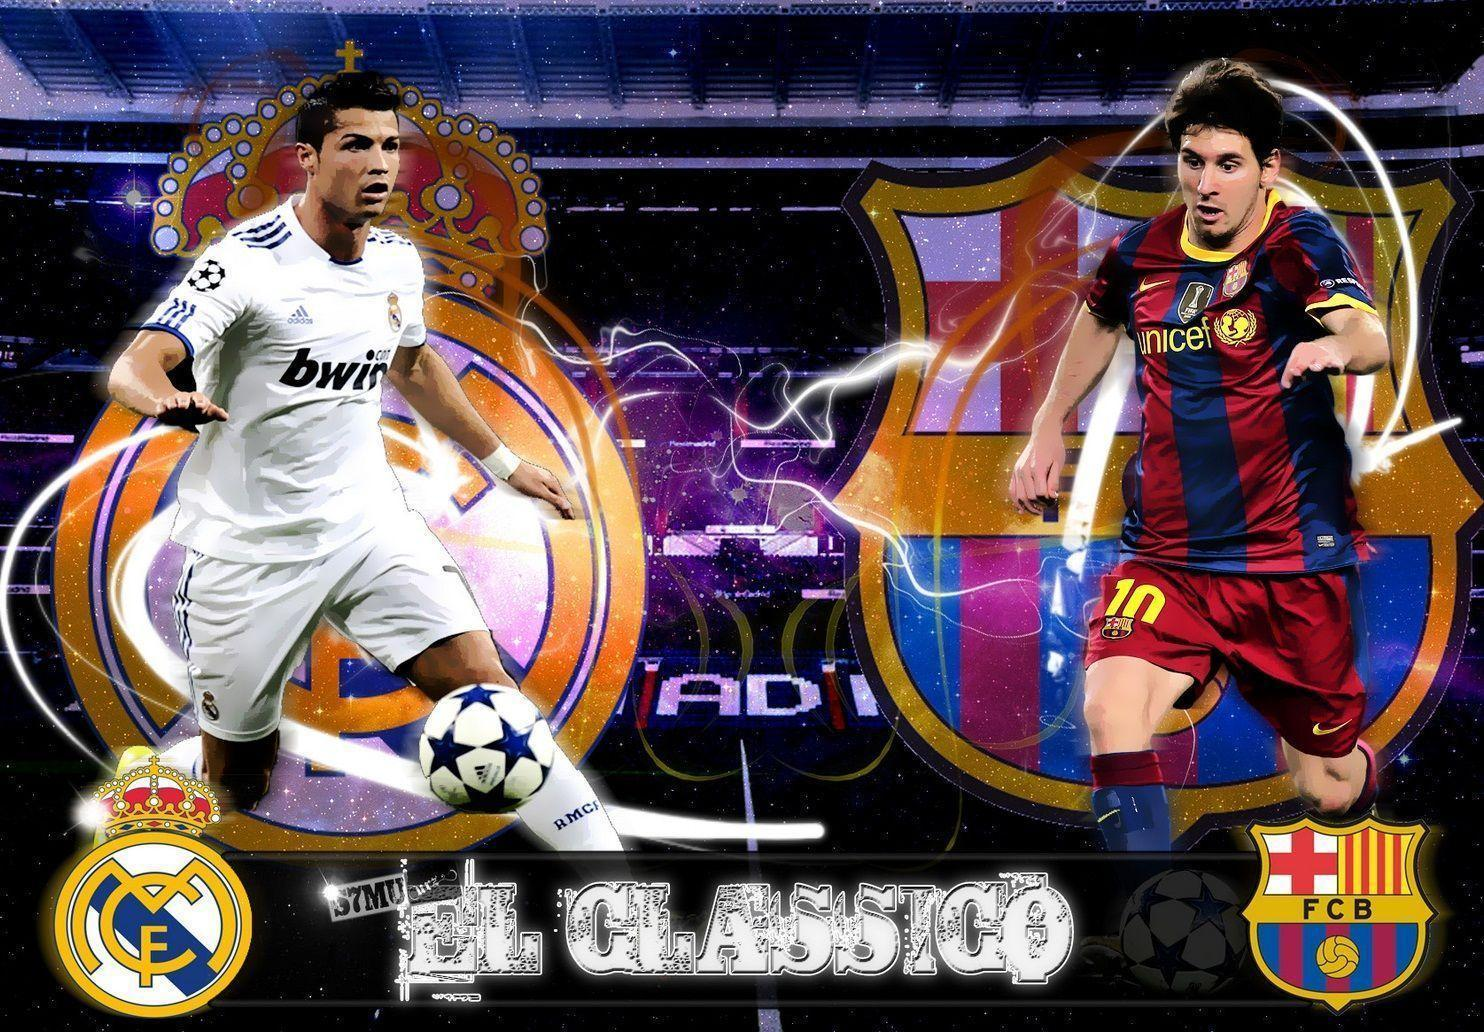 cristiano ronaldo vs lionel messi 2016 wallpapers